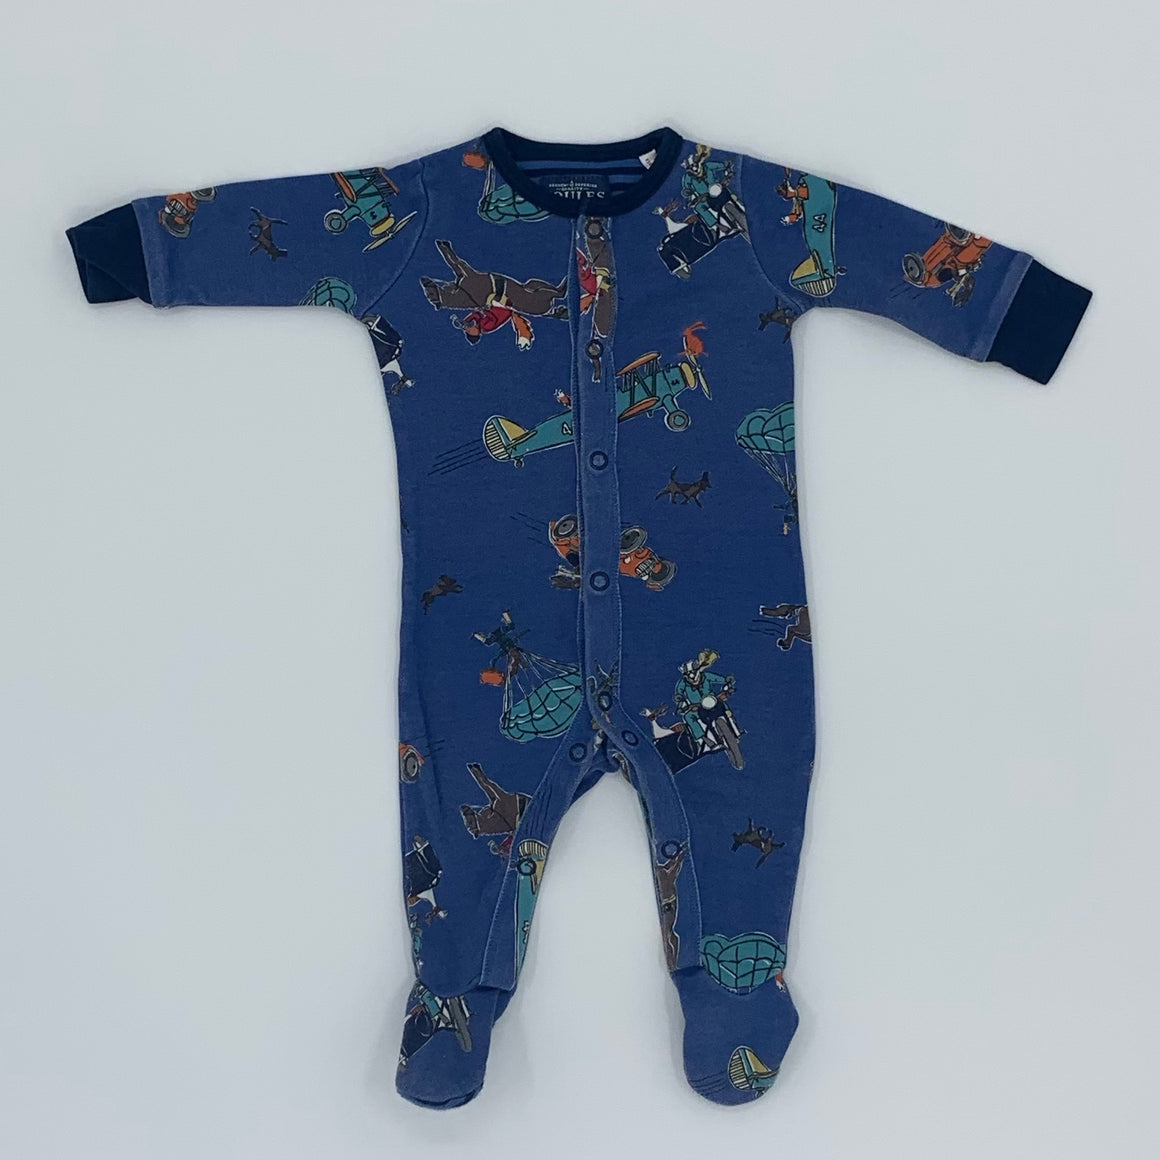 Gently Worn Joules blue sleepsuit size 0-3 months